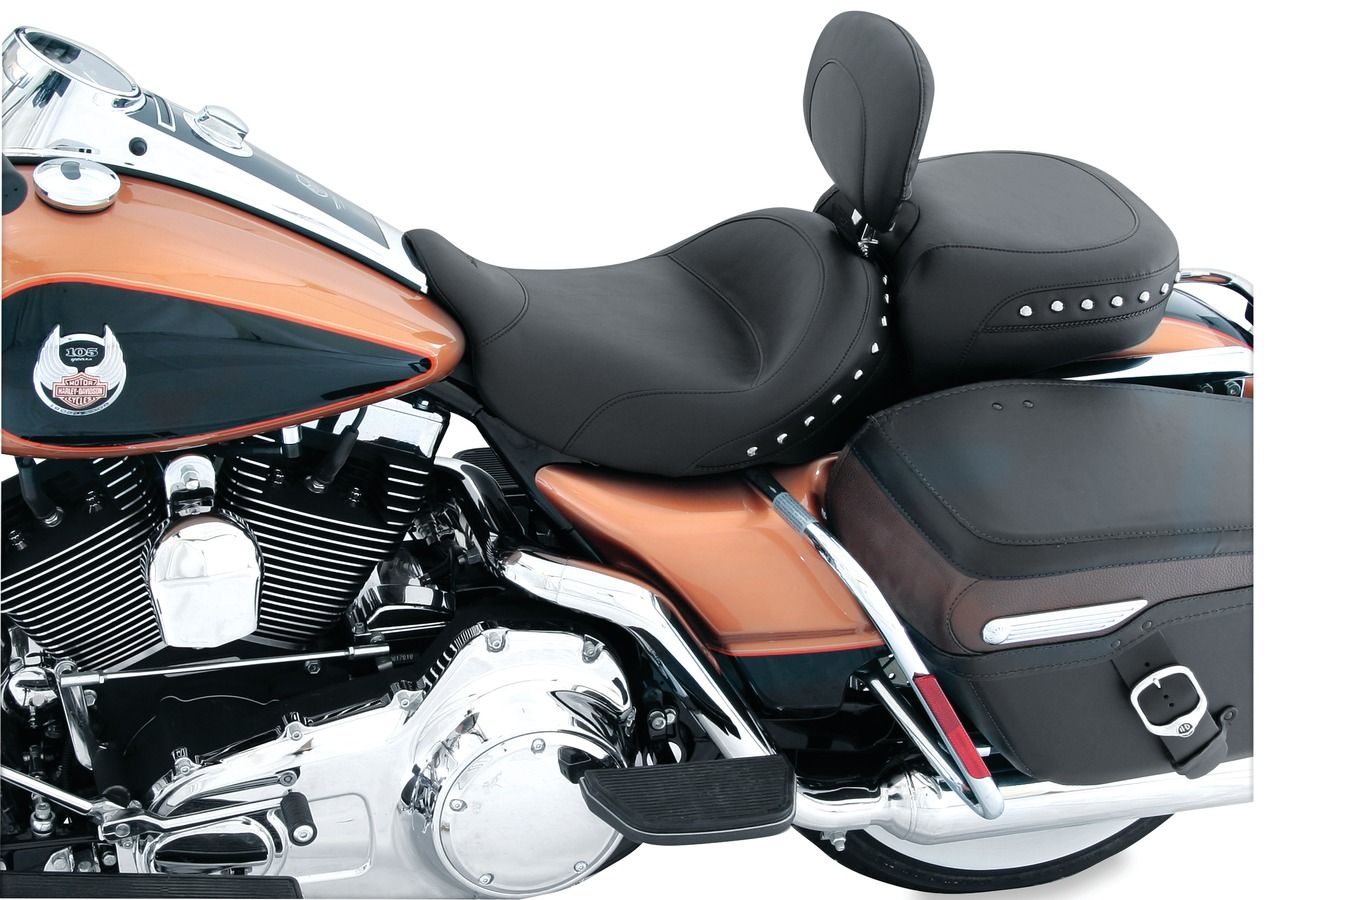 Standard Touring Solo Seat with Driver Backrest, Chrome Studded, Black